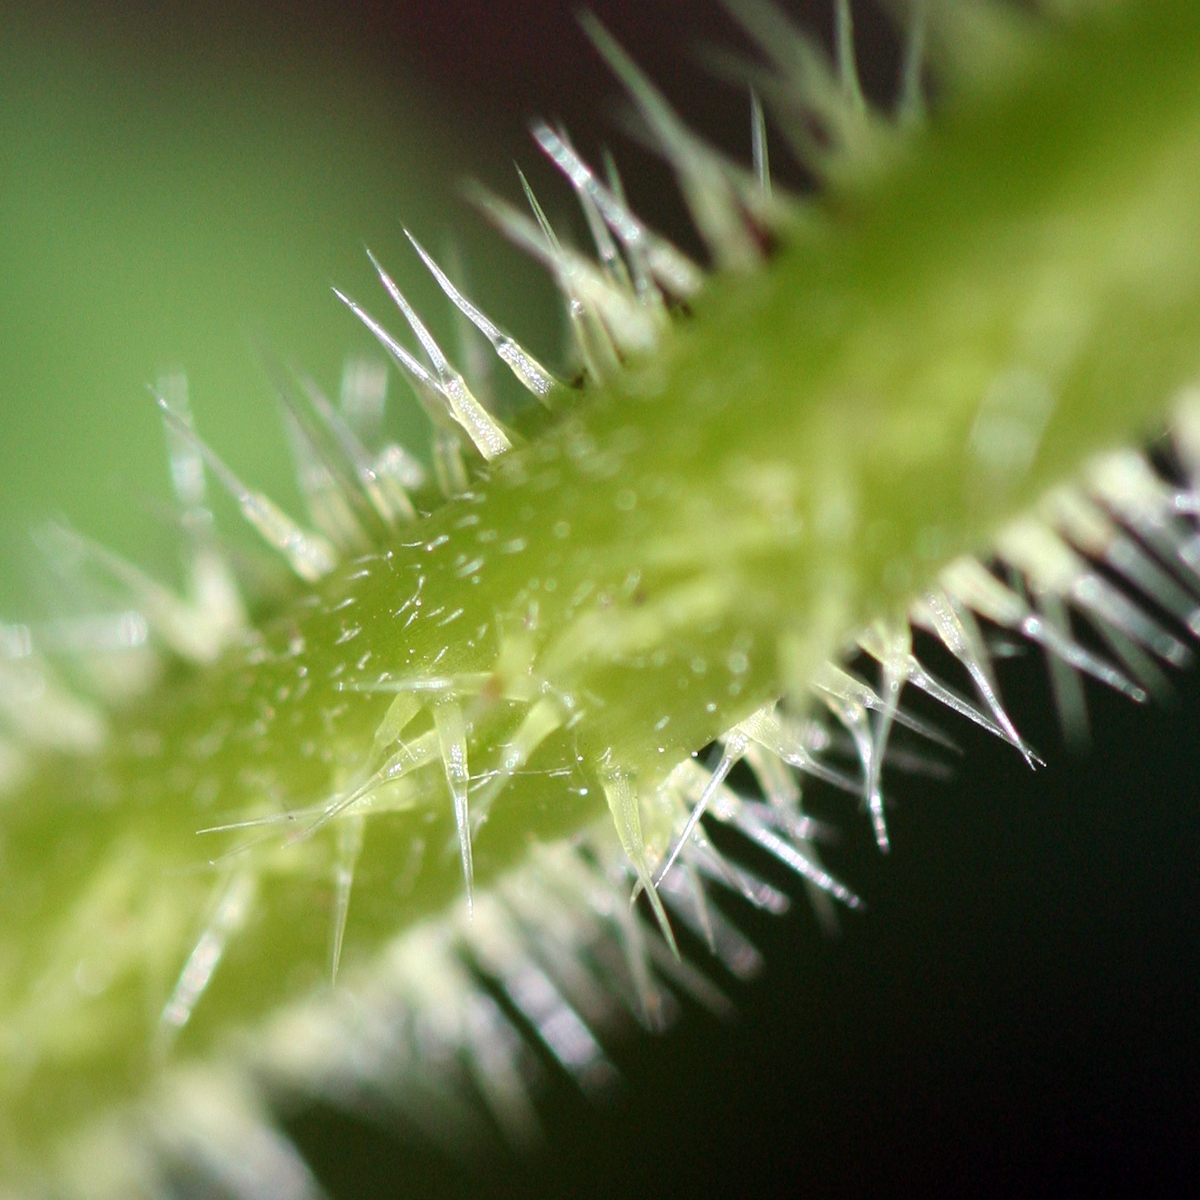 Image Result For Other Plants That Look Like Weed